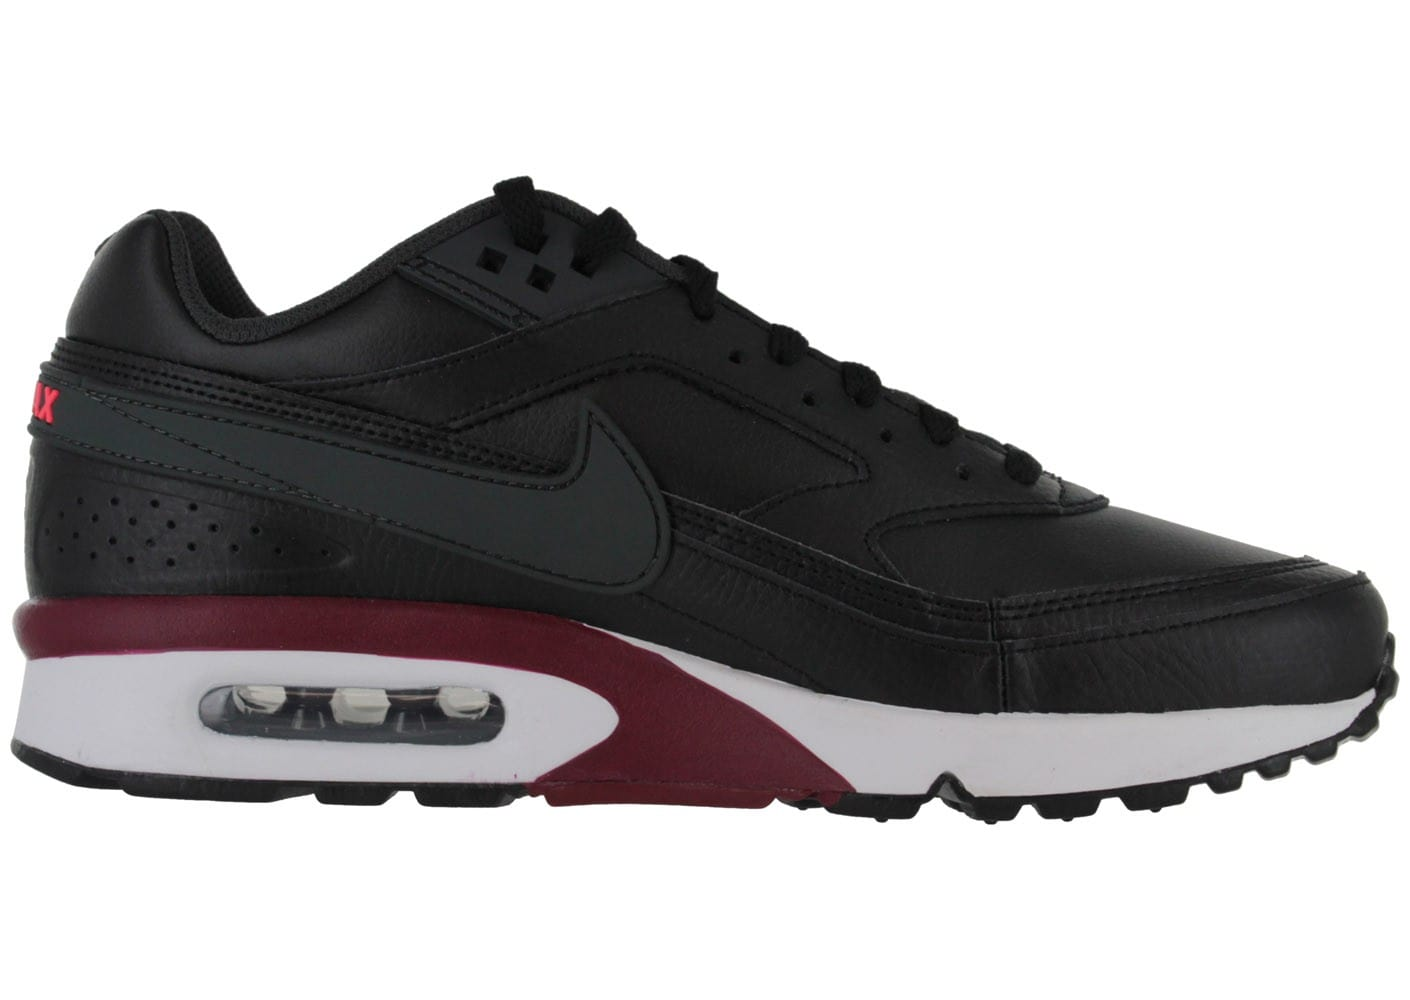 nike air max bw noir chaussures homme chausport. Black Bedroom Furniture Sets. Home Design Ideas